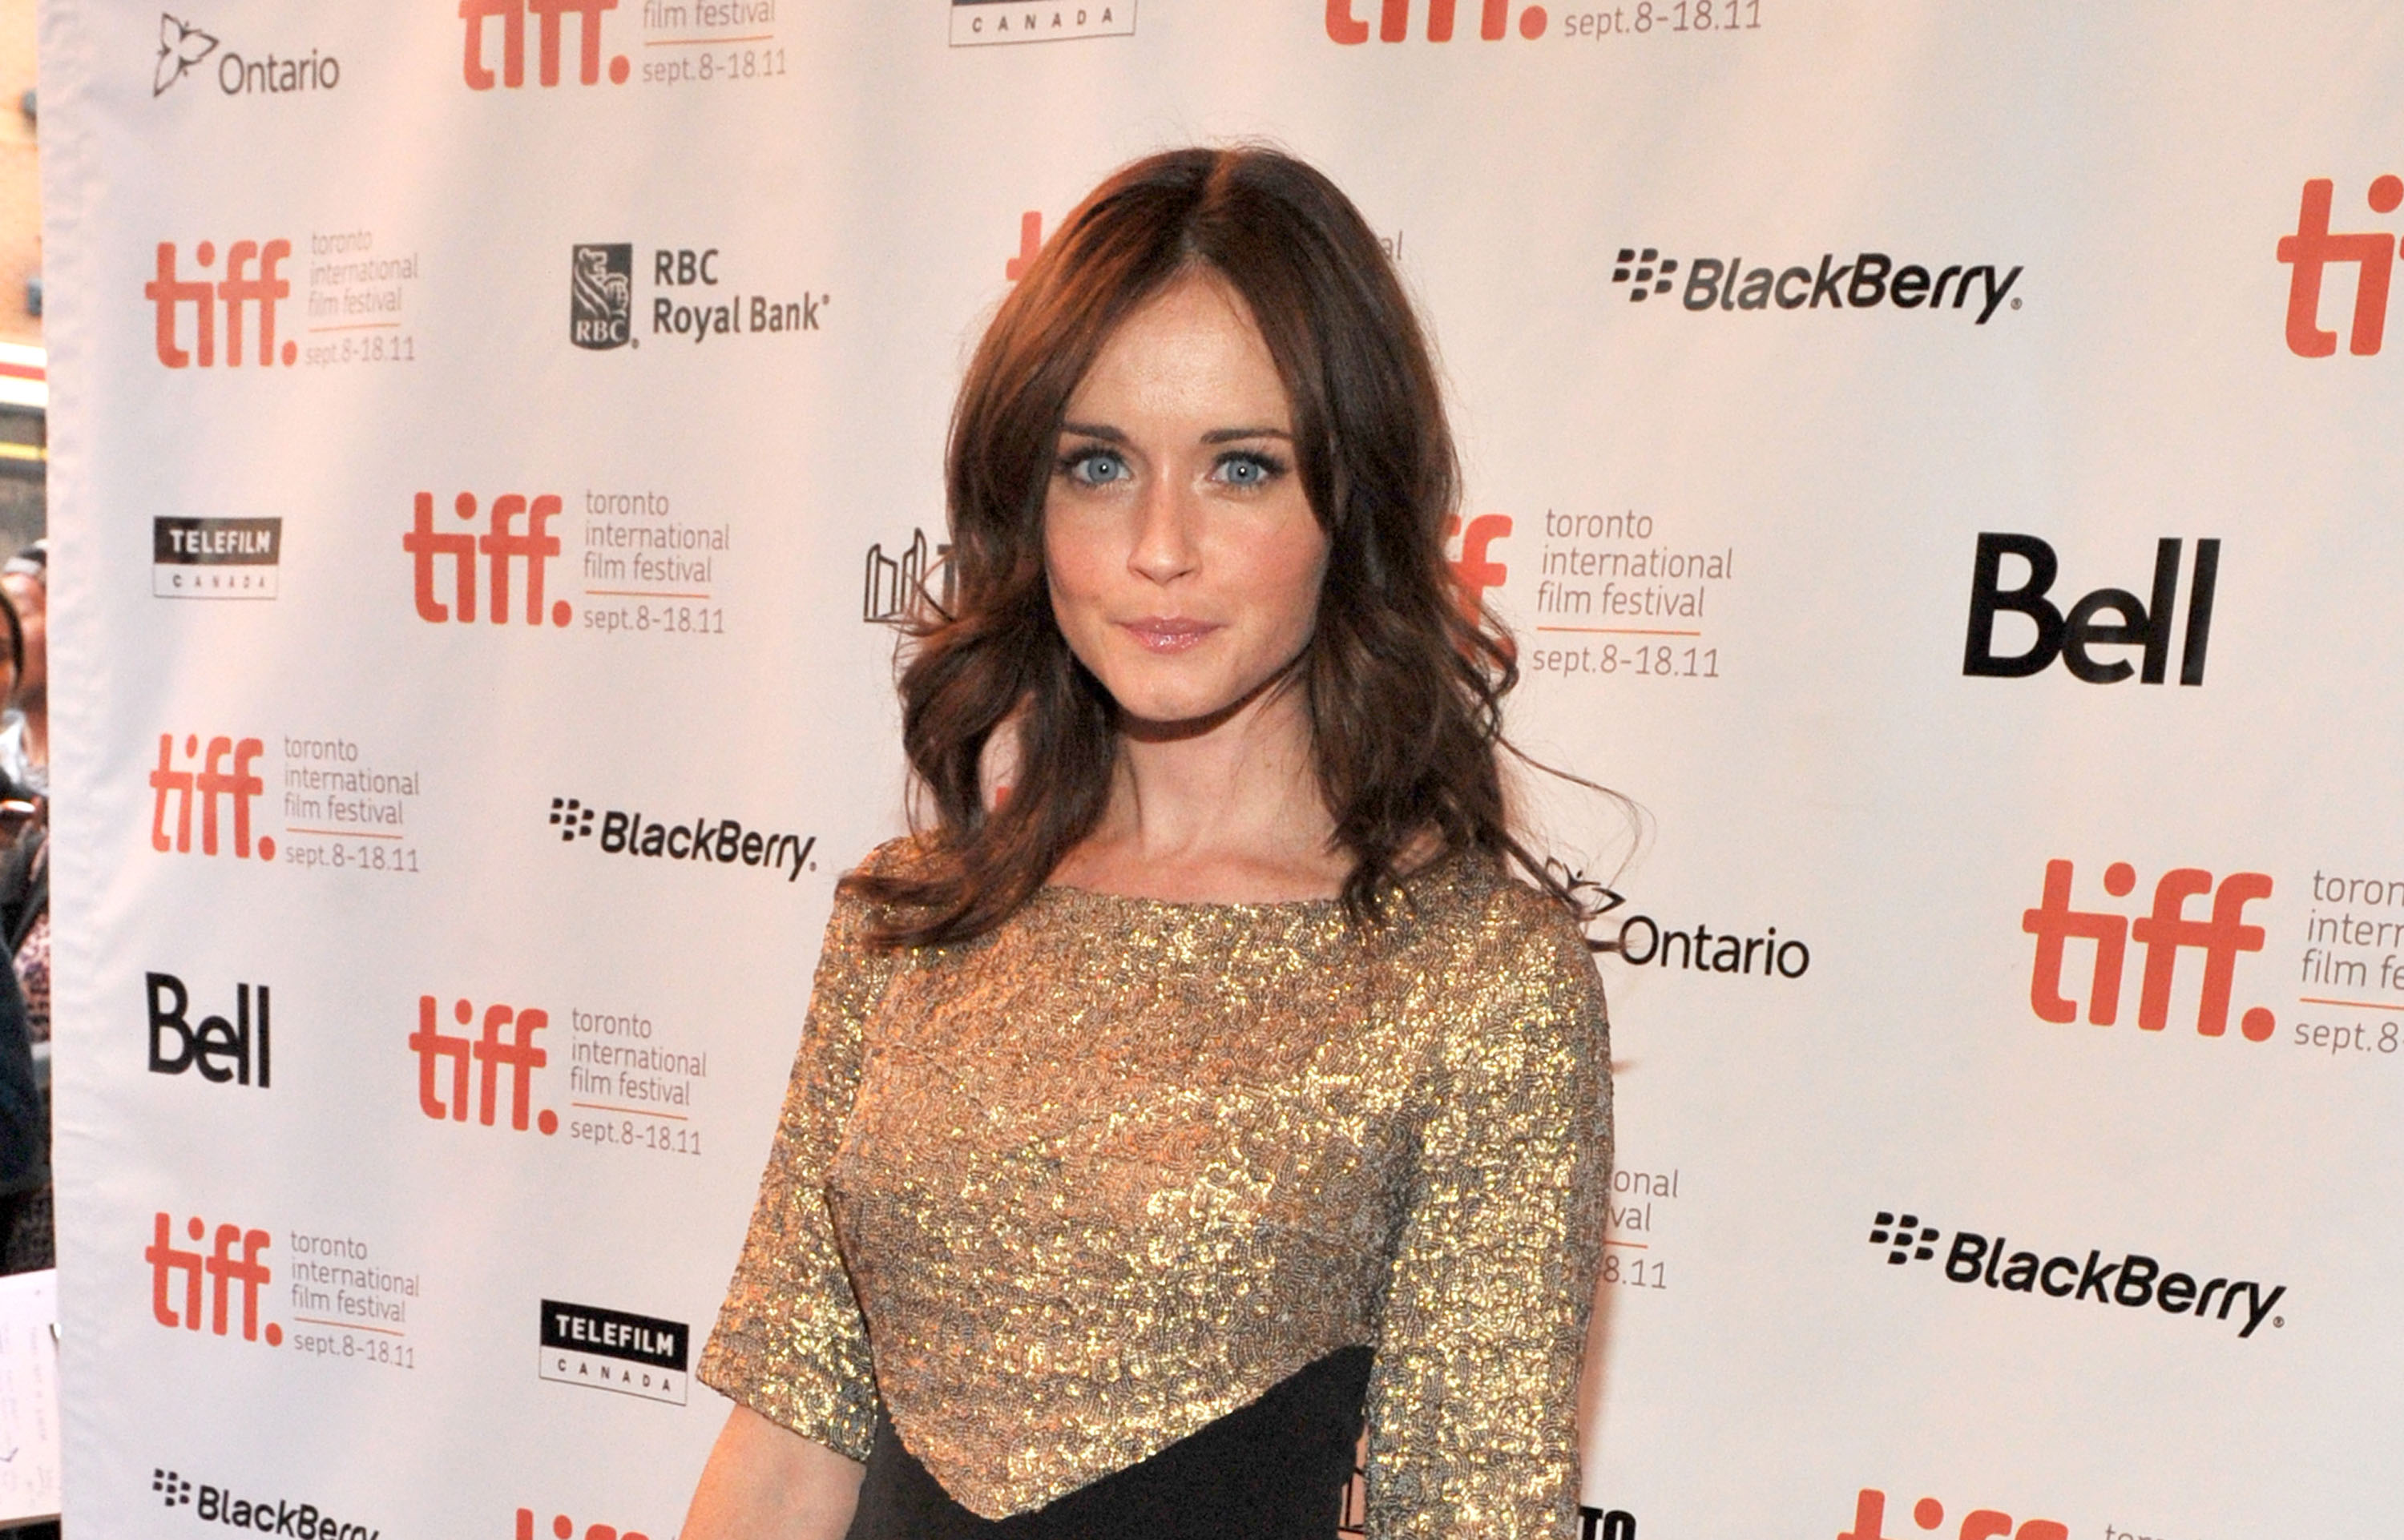 ICloud Alexis Bledel nudes (85 foto and video), Pussy, Is a cute, Instagram, lingerie 2017